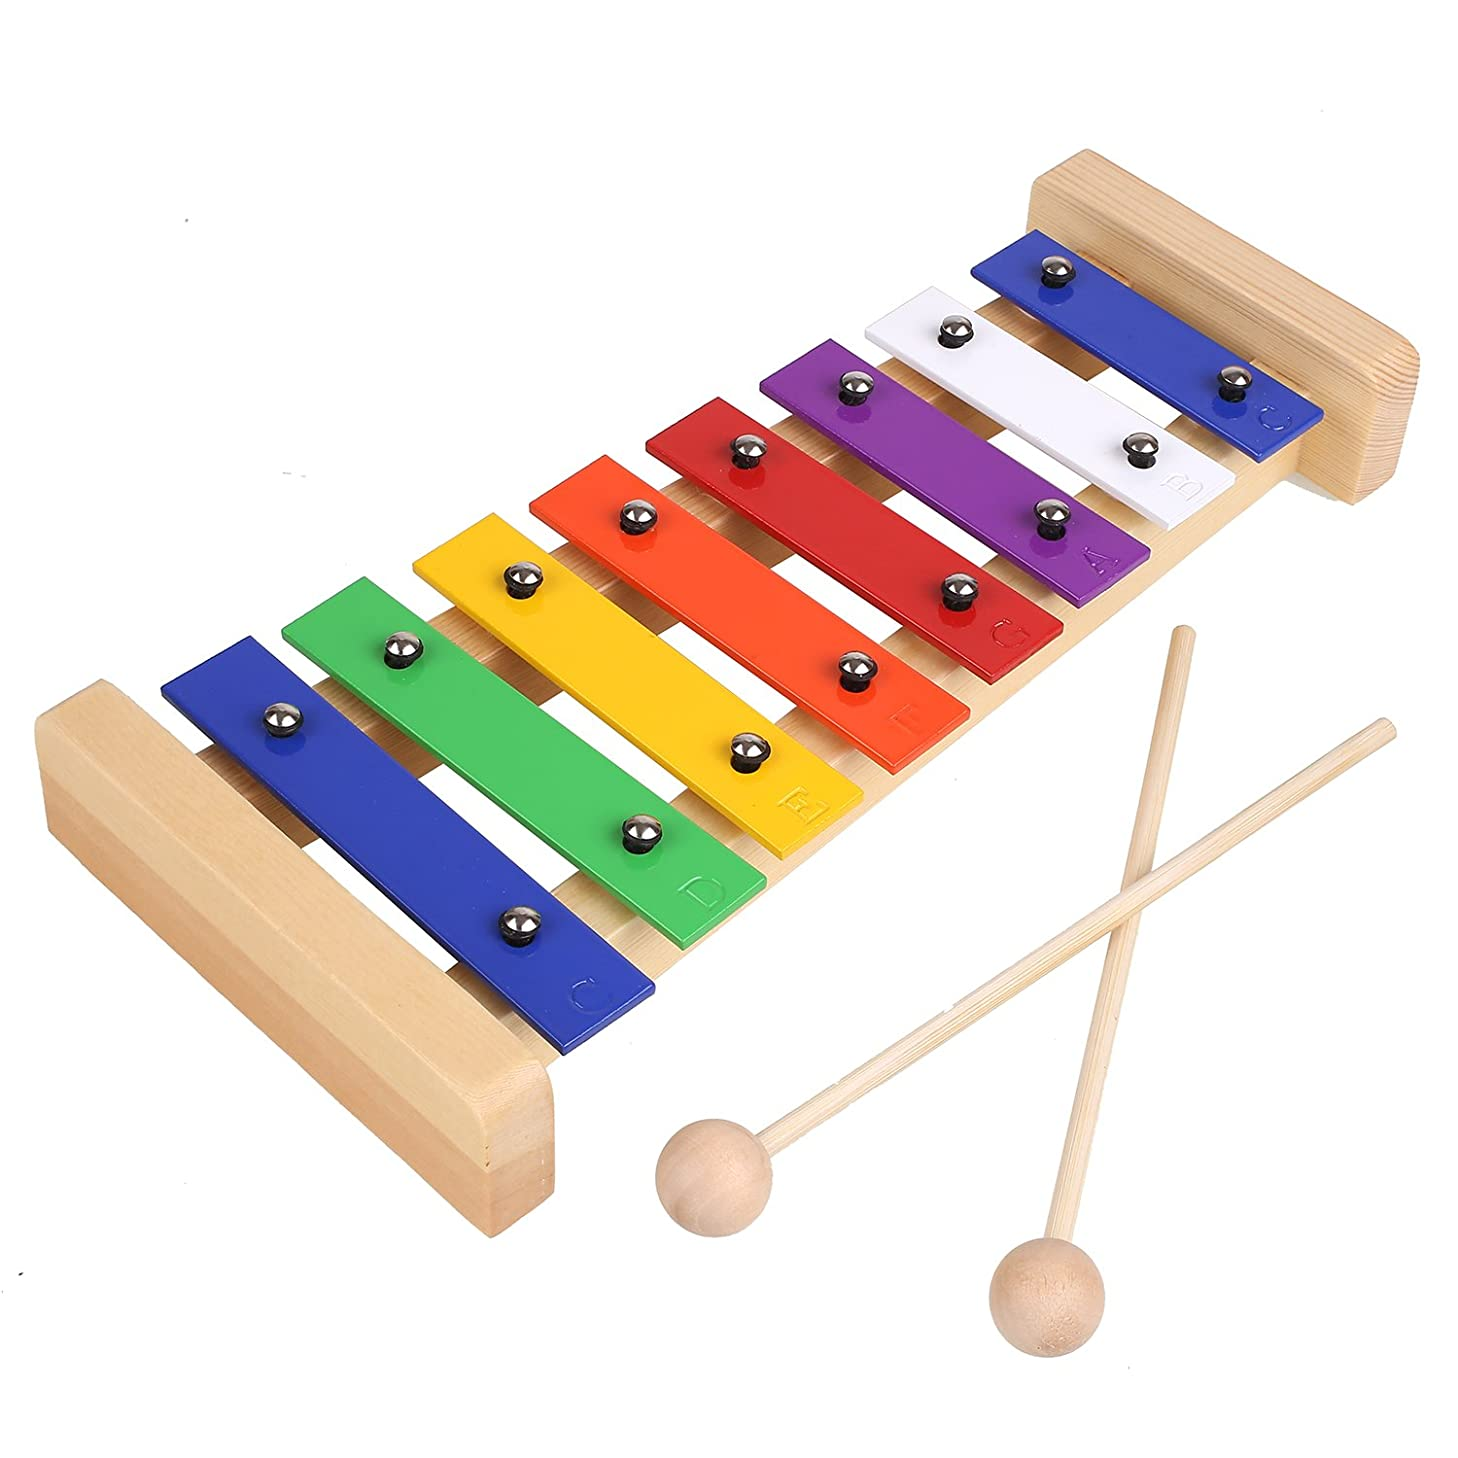 MVPower Xylophone for Kids Best Educational Development Musical Toy with Two Child-Safe Wooden Mallets and Colorful Clear Sounding Metal Keys, Perfectly 8 Toned Musical Gift for Toddler